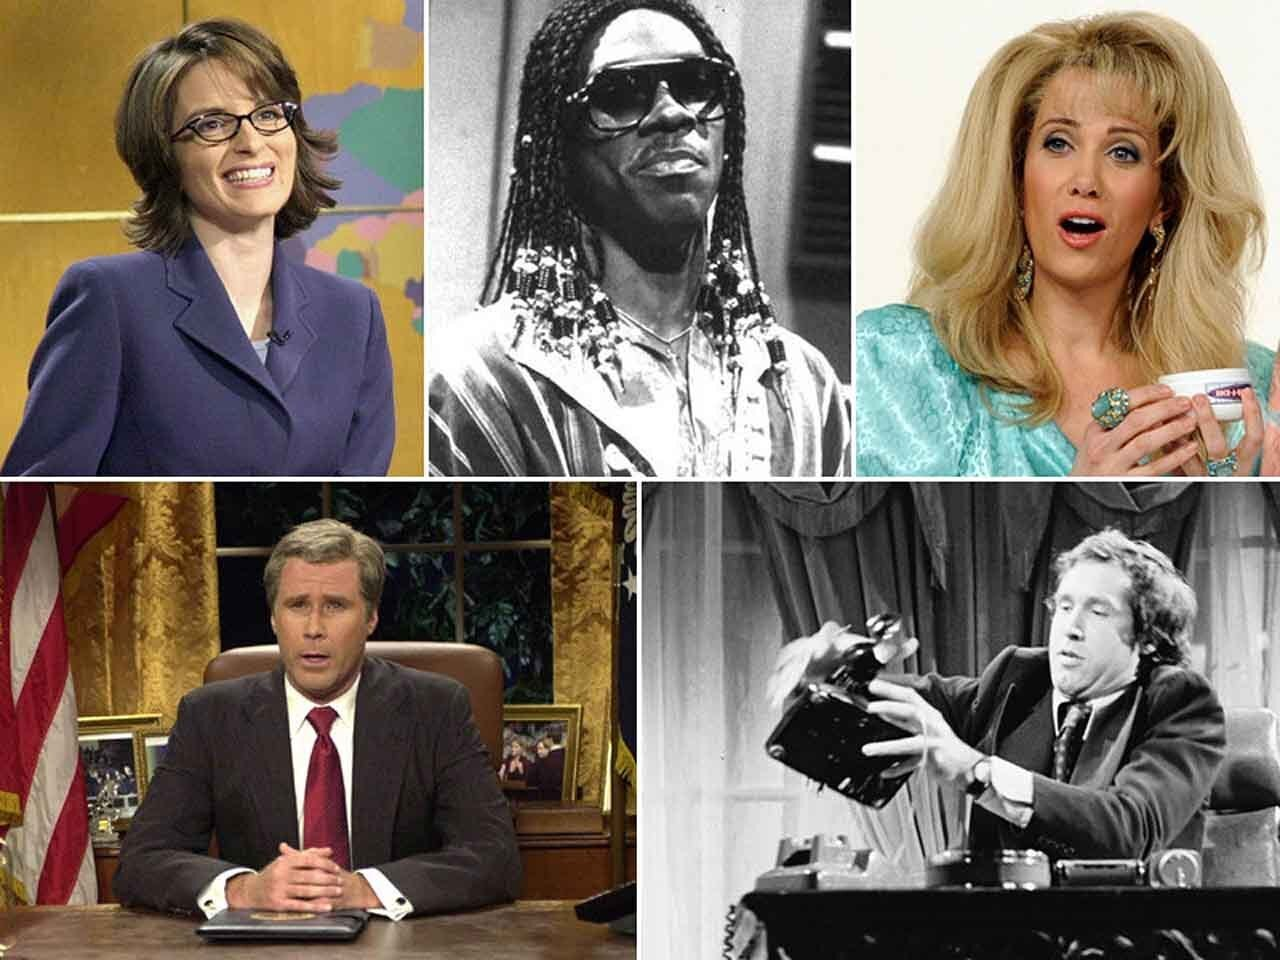 """""""Saturday Night Live"""" celebrates its 40th anniversary this year. And many former cast members are returning for a reunion. Here's a look at what some of the show's most notable comedy stars have been doing since they left 30 Rock behind."""